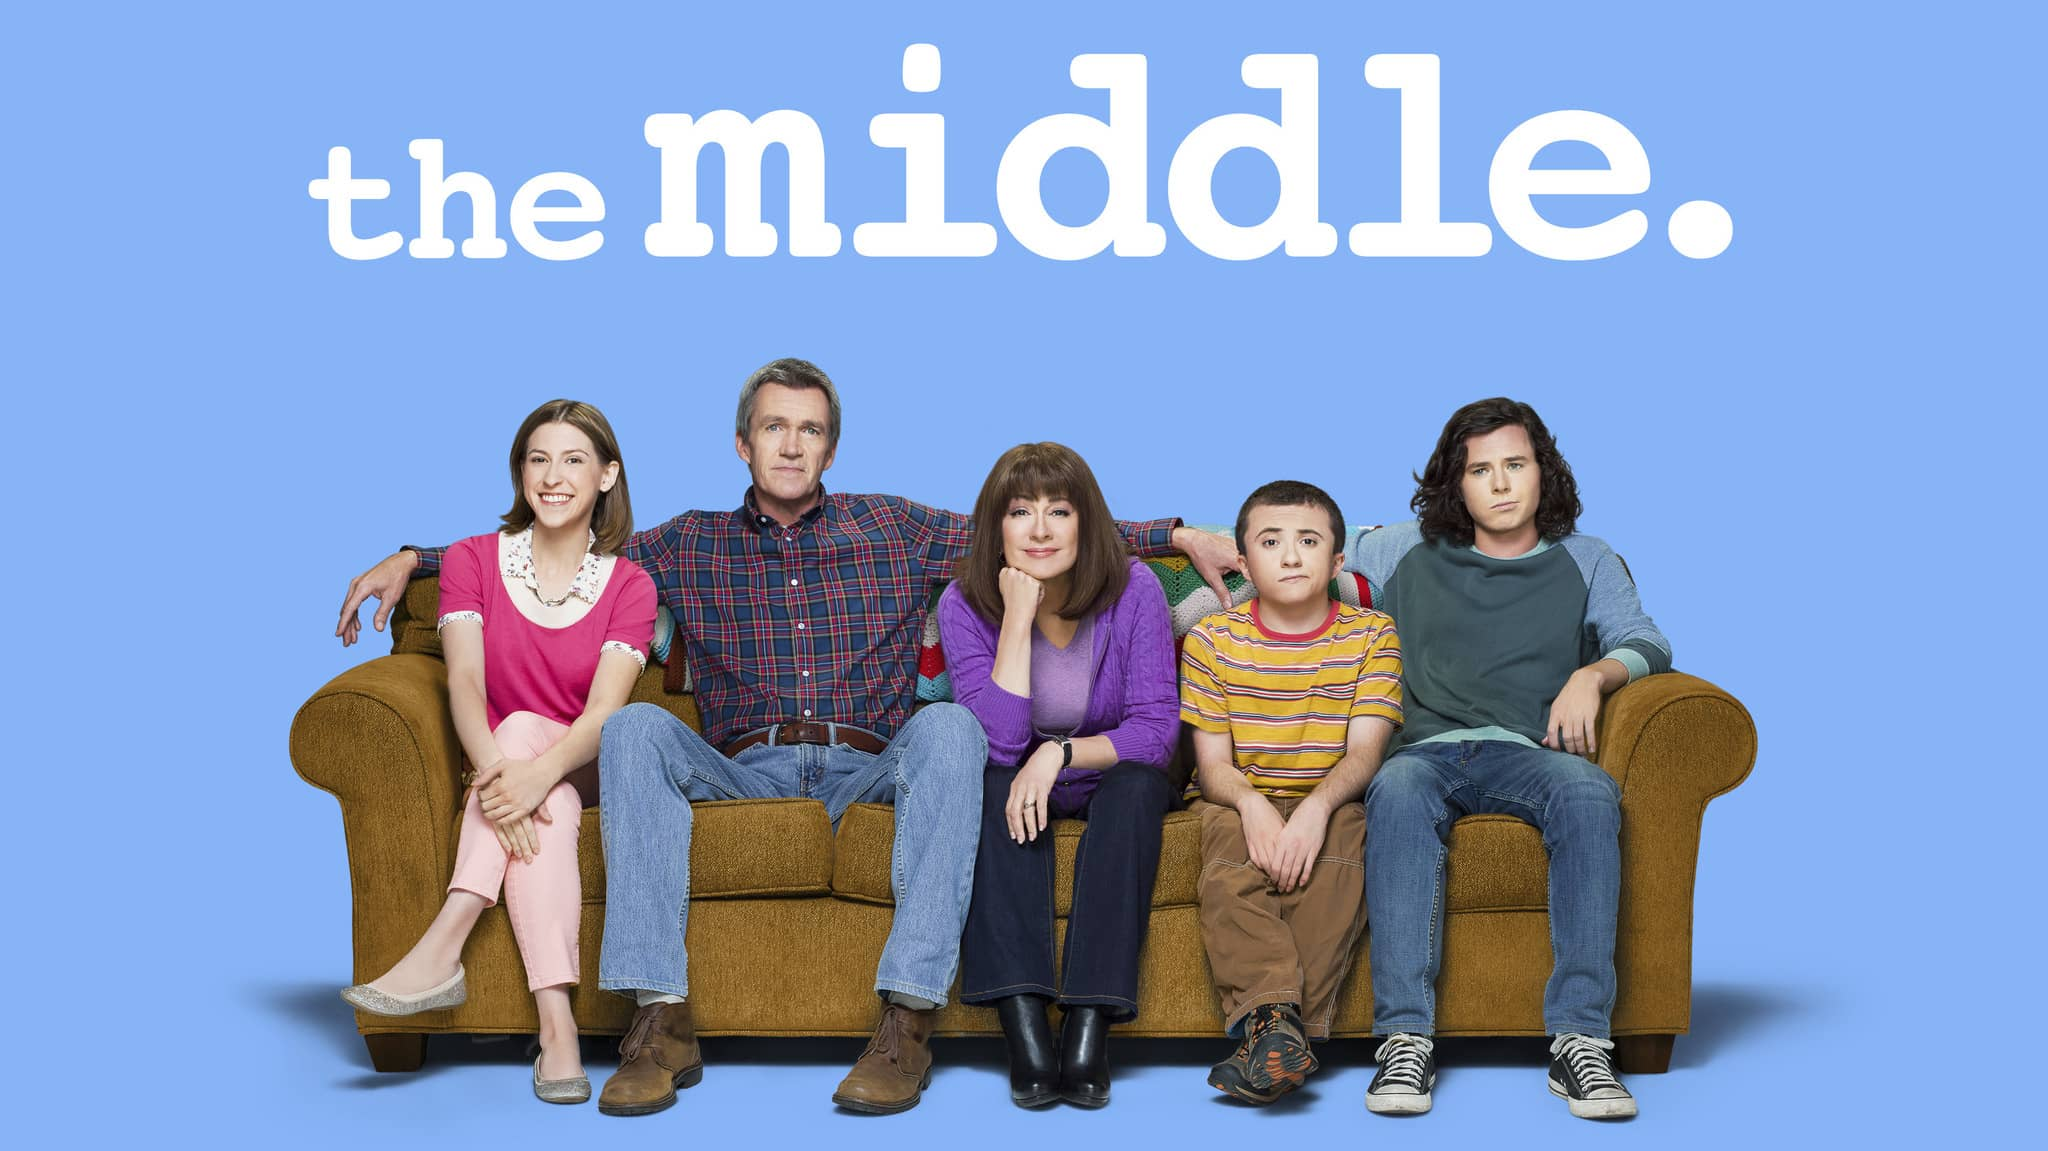 The Middle HBO